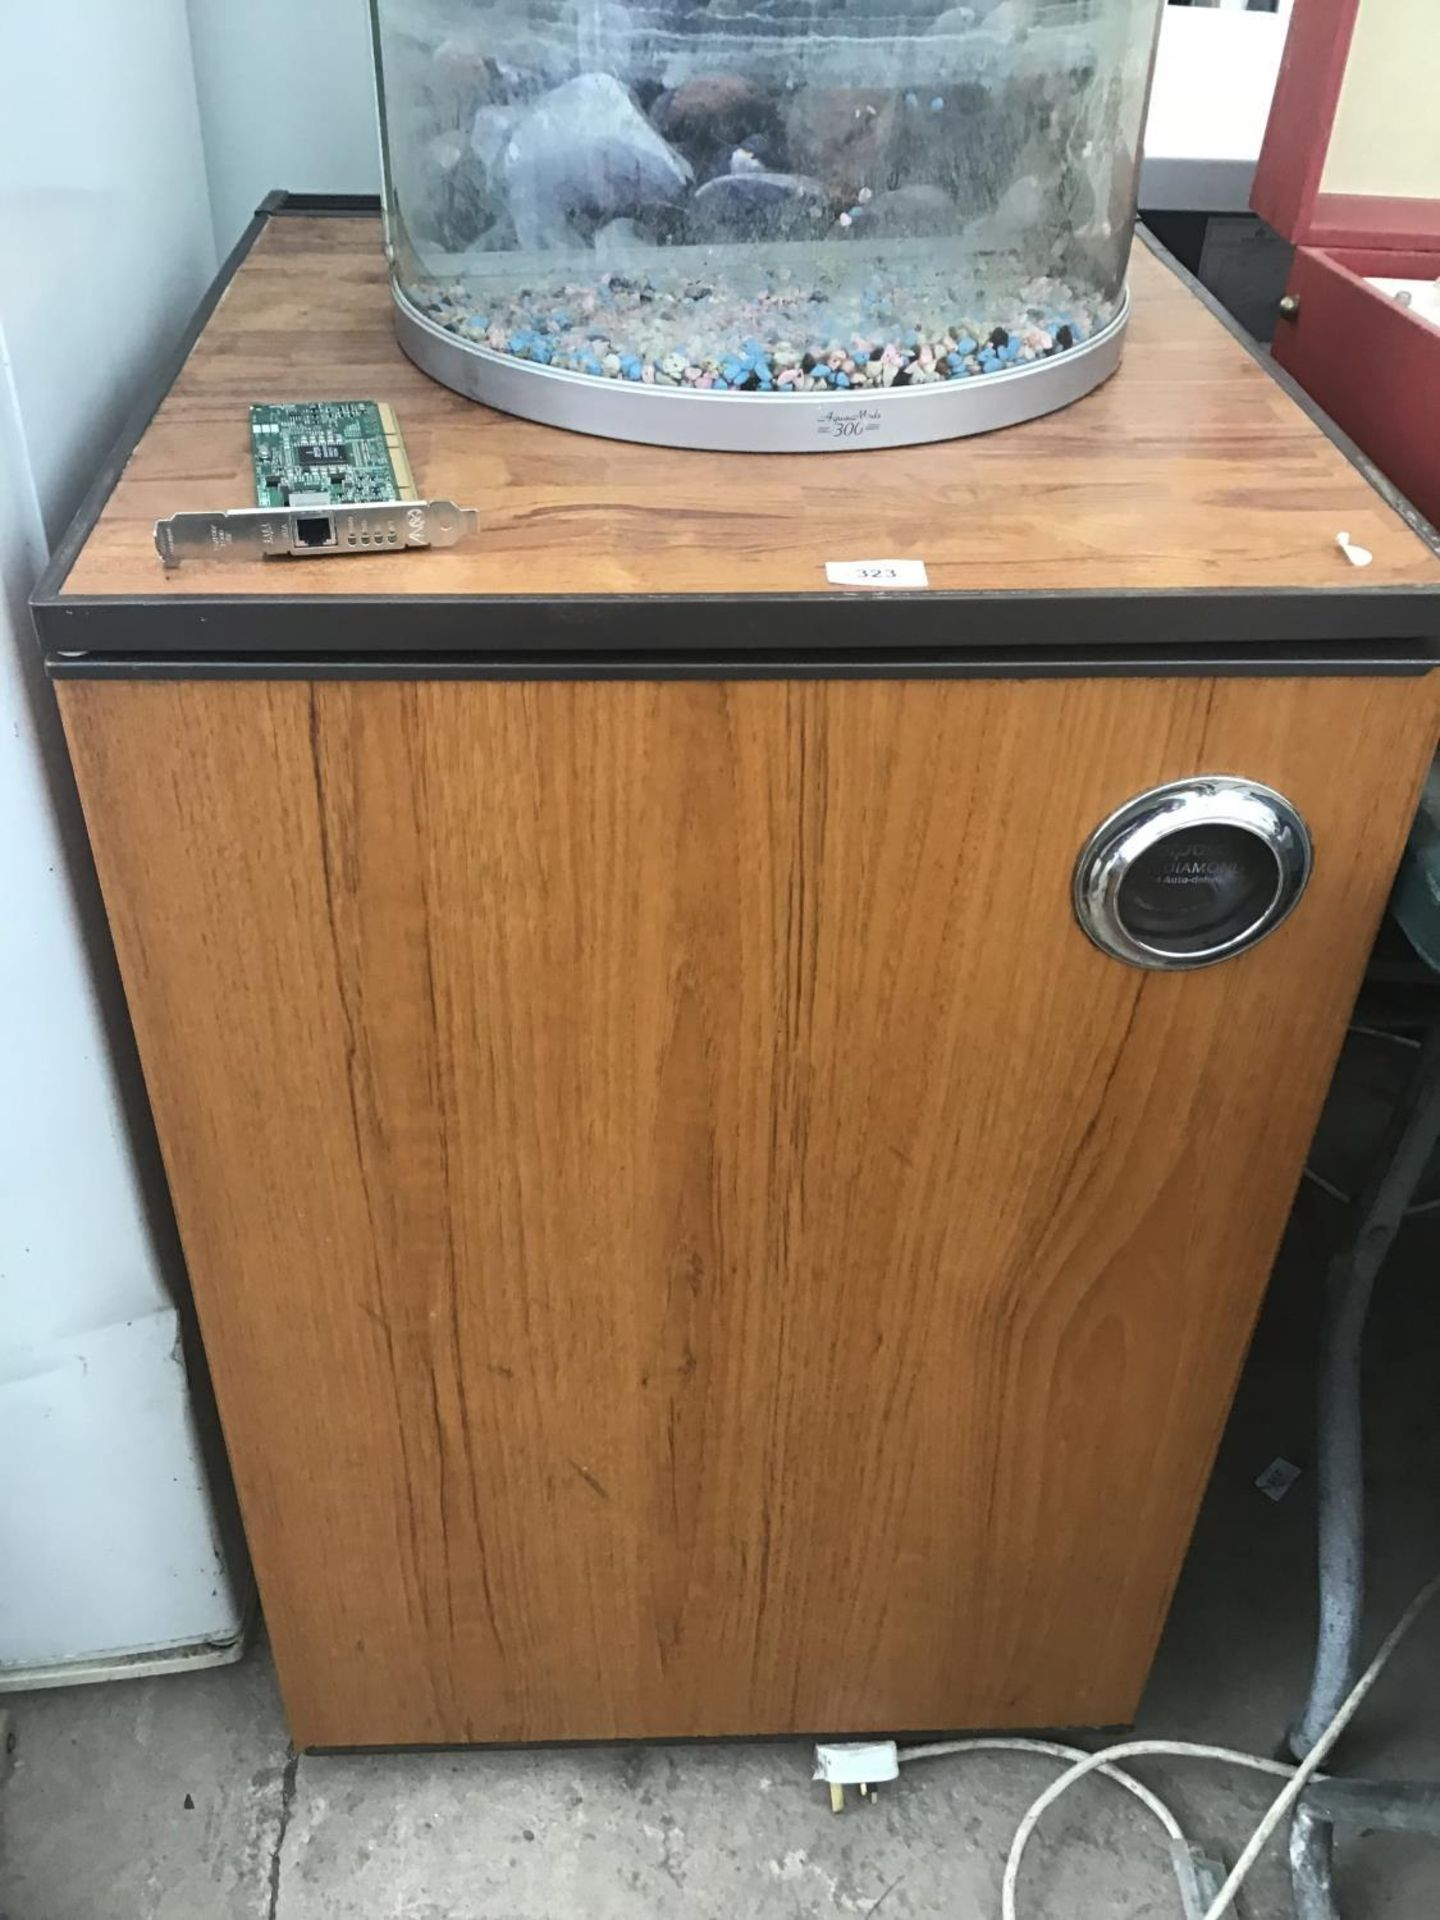 Lot 323 - A HOTPOINT DIAMOND UNDER COUNTER FRIDGE IN WORKING ORDER